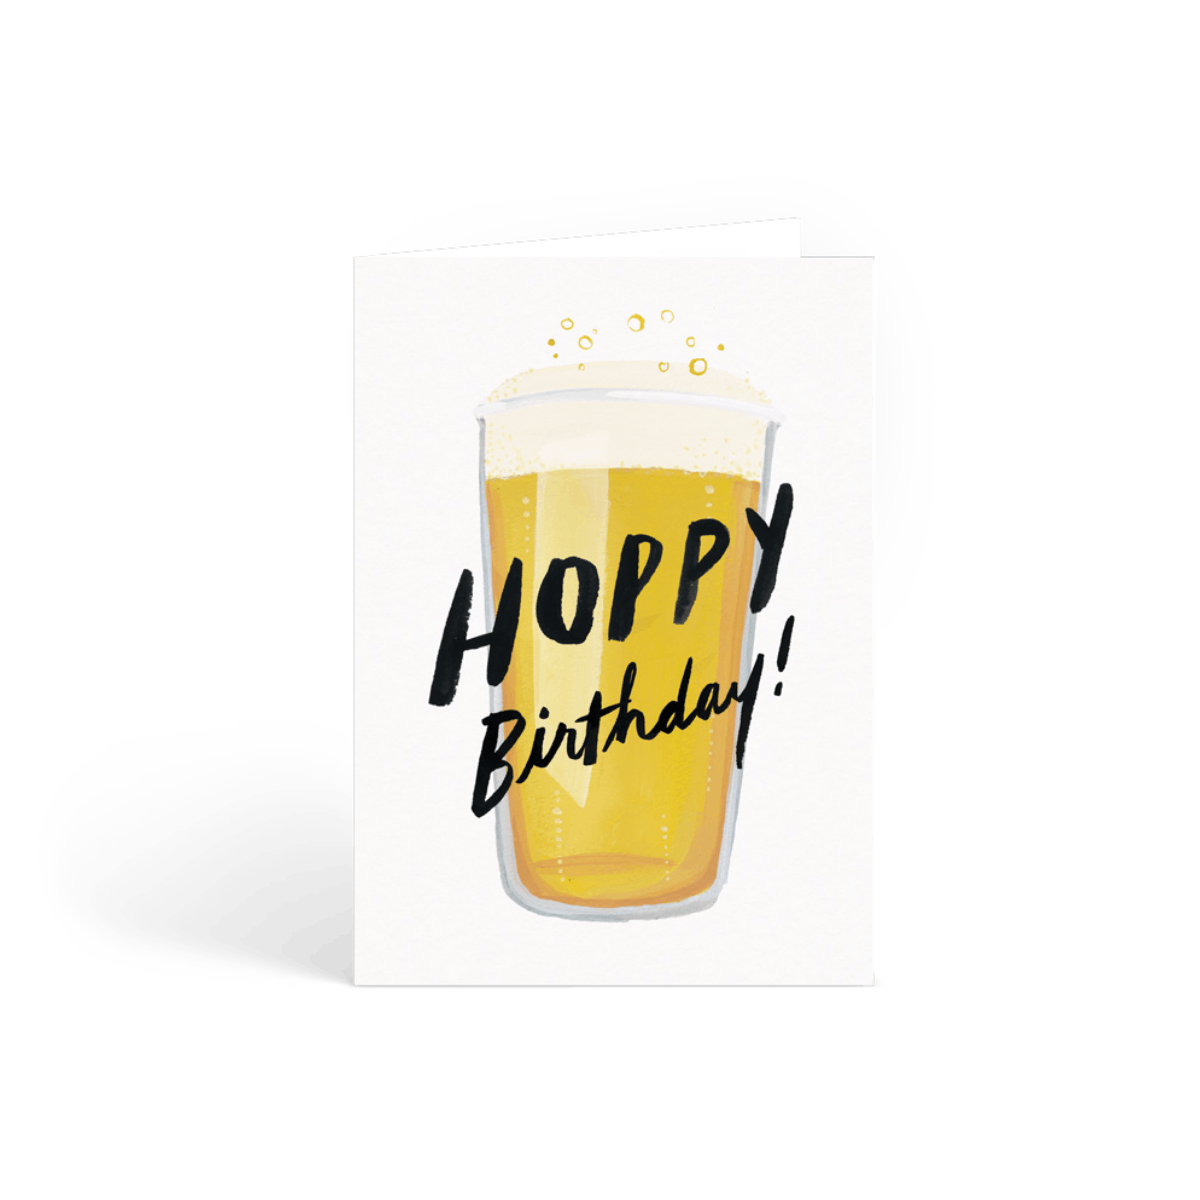 Https%3a%2f%2fwww.papier.com%2fproduct image%2f10752%2f2%2fhoppy birthday 2740 front 1473263561.png?ixlib=rb 1.1